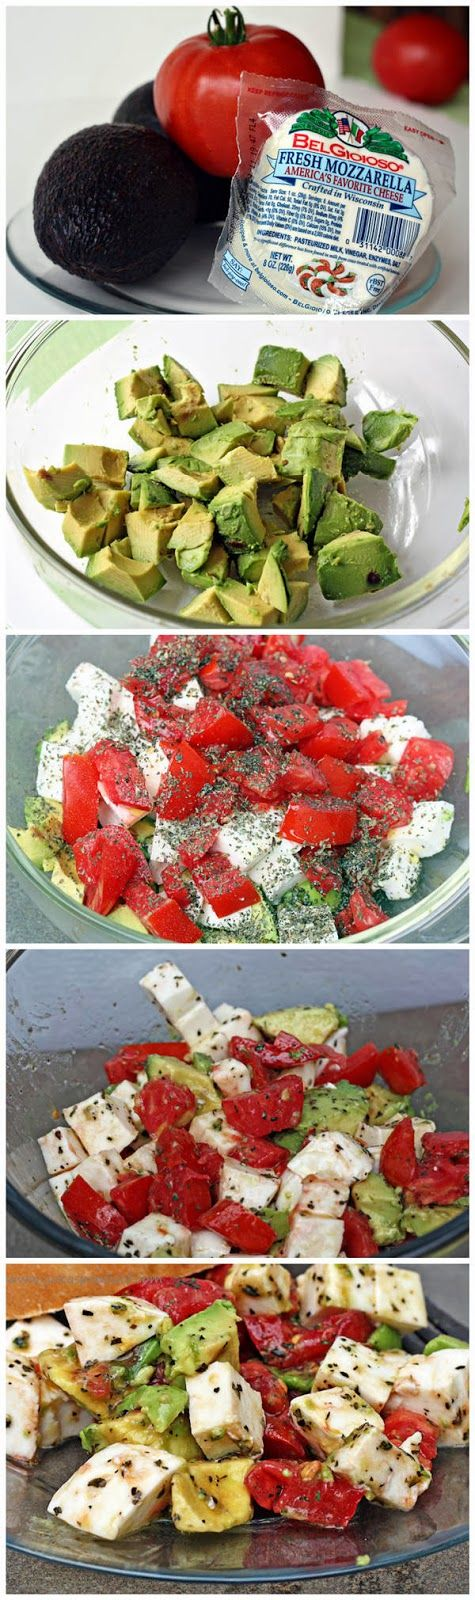 Avocado / Tomato/ Mozzarella Salad - 2 Avocados (cubed), 2-3 Tomatoes (cubed), 1 ball fresh Mozzarella (cubed) or the small balls, 2Tbsp EVOO, 2tsp basil (use fresh use more), Salt and Pepper to taste.